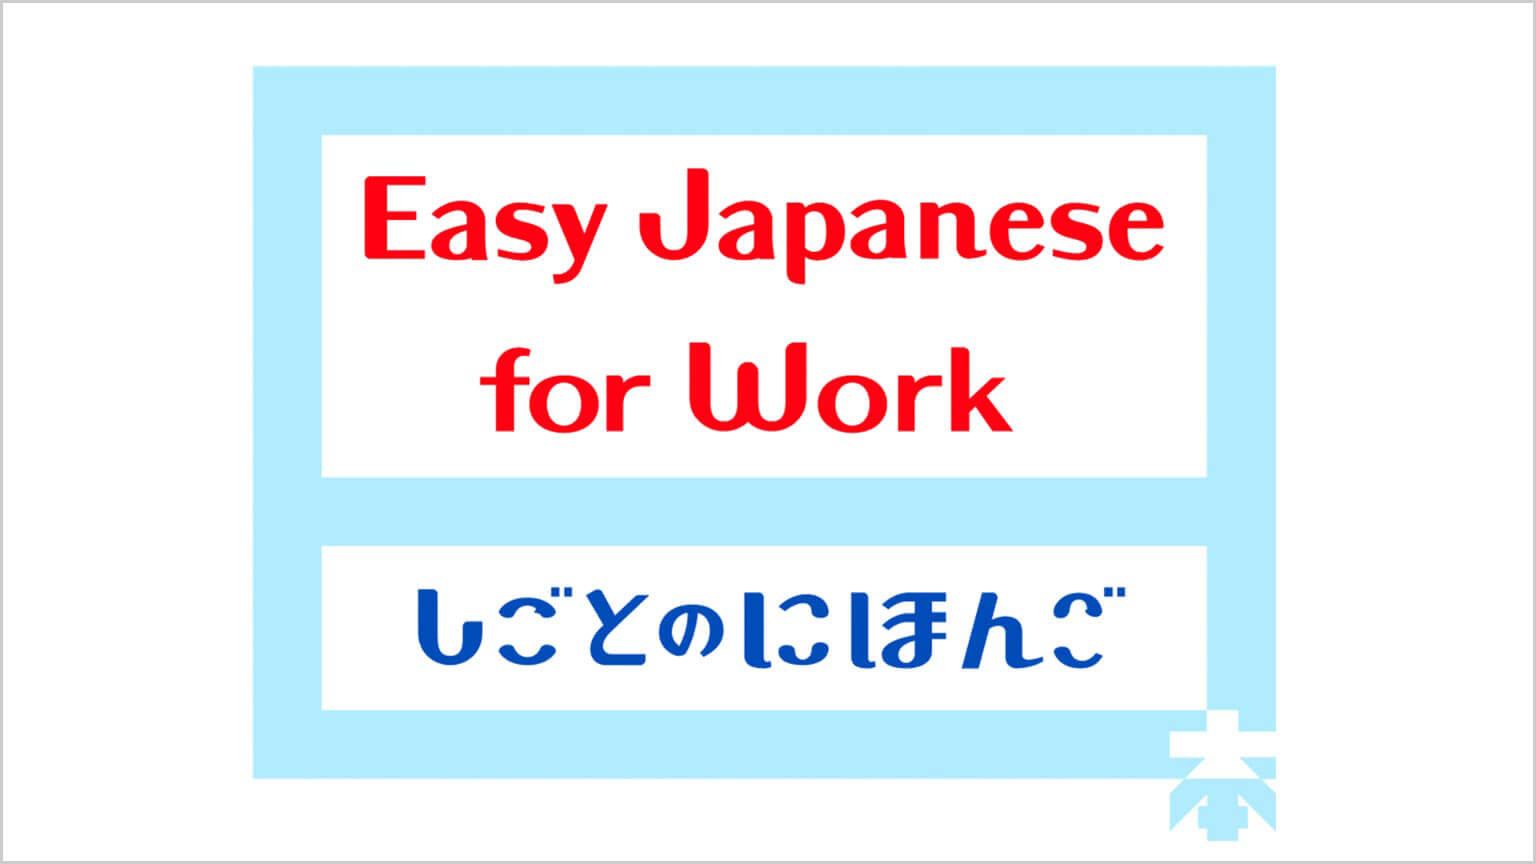 Easy Japanese for Work